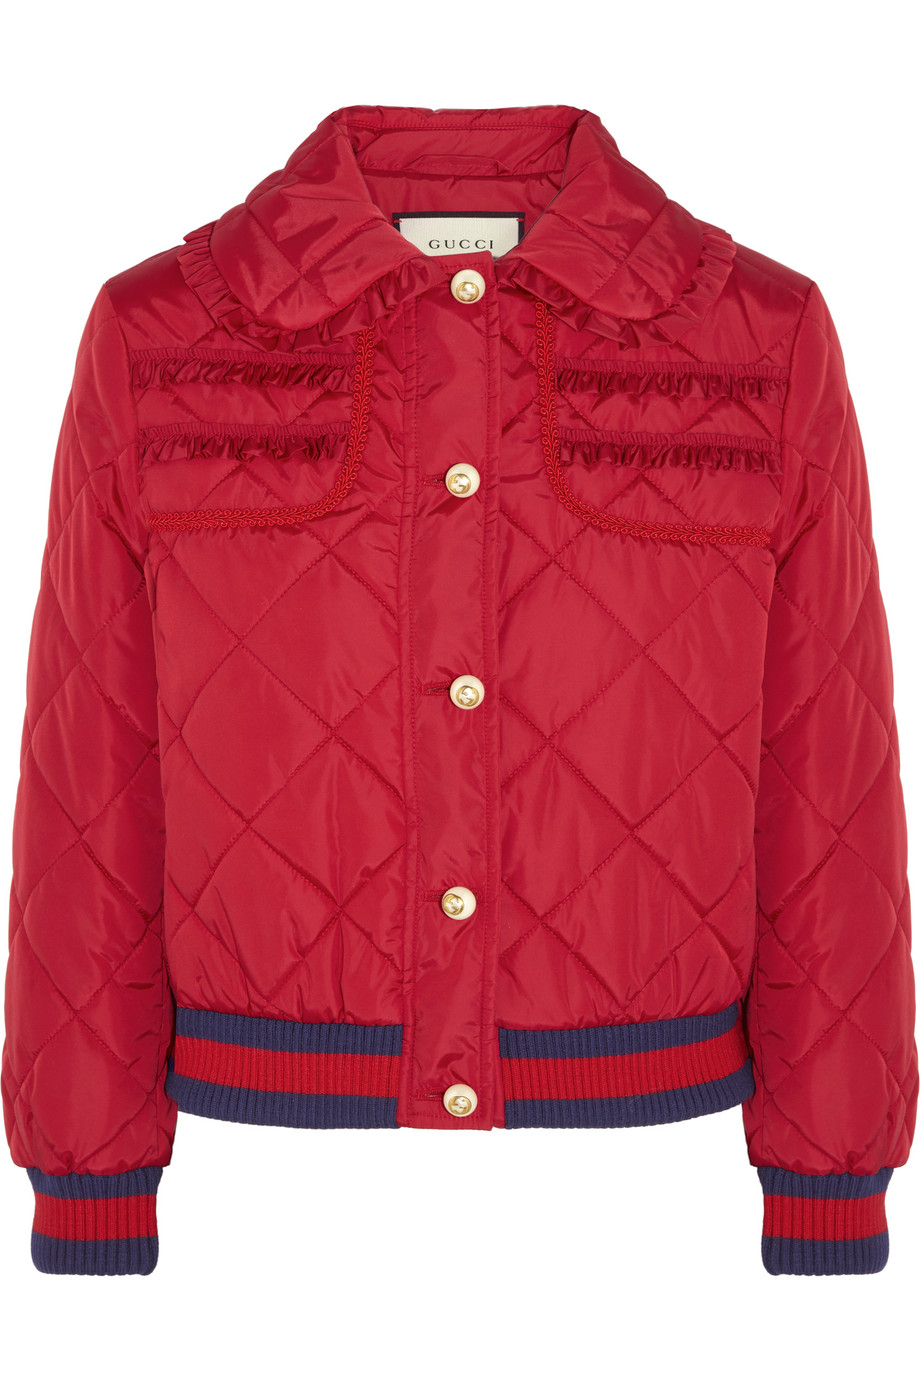 Gucci Quilted Shell Bomber Jacket, Size: 44